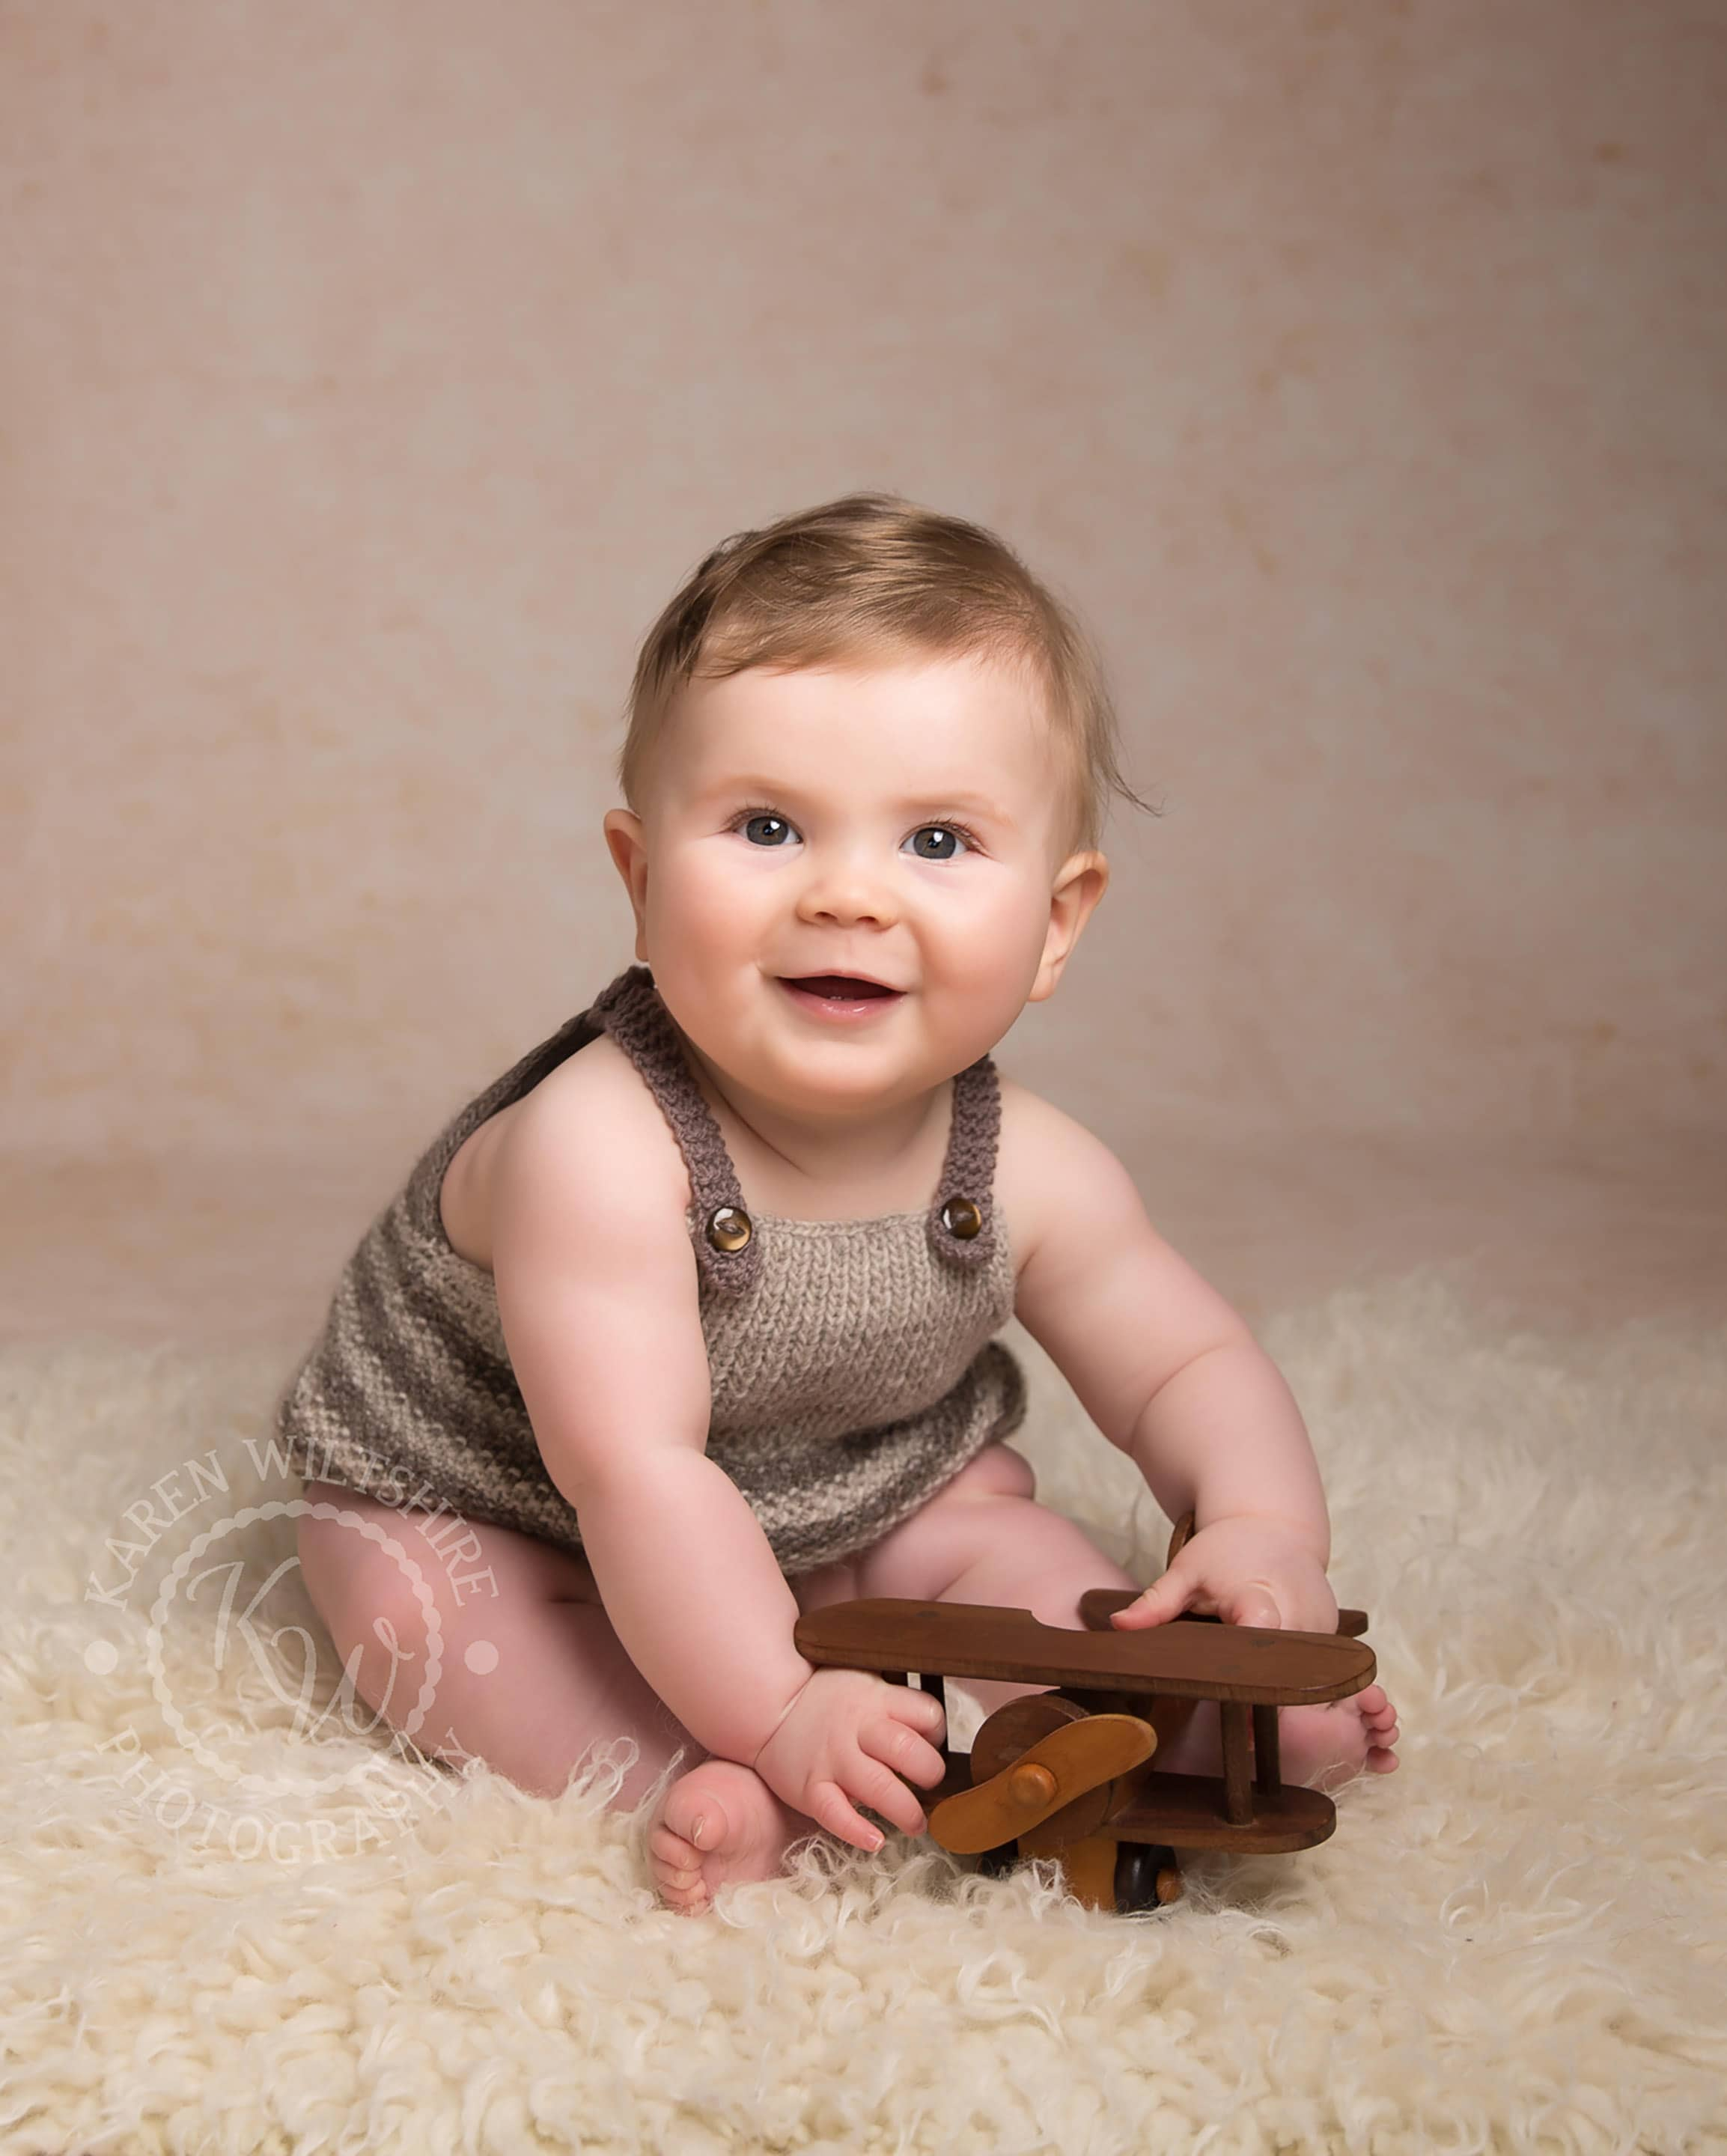 baby photography, boy sitting on fur rug